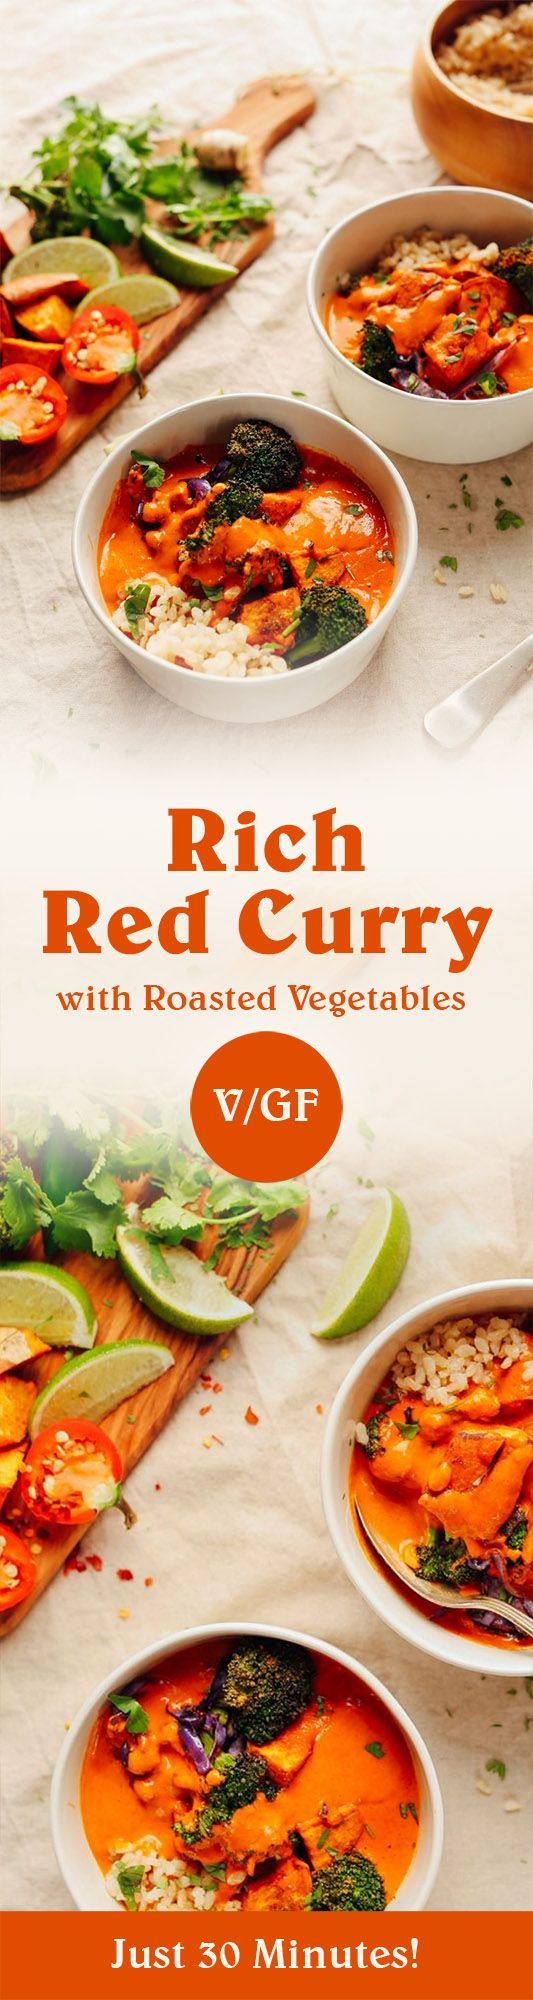 There's nothing more satiating than rich coconut milk and red pepper-based curry with roasted vegetables.